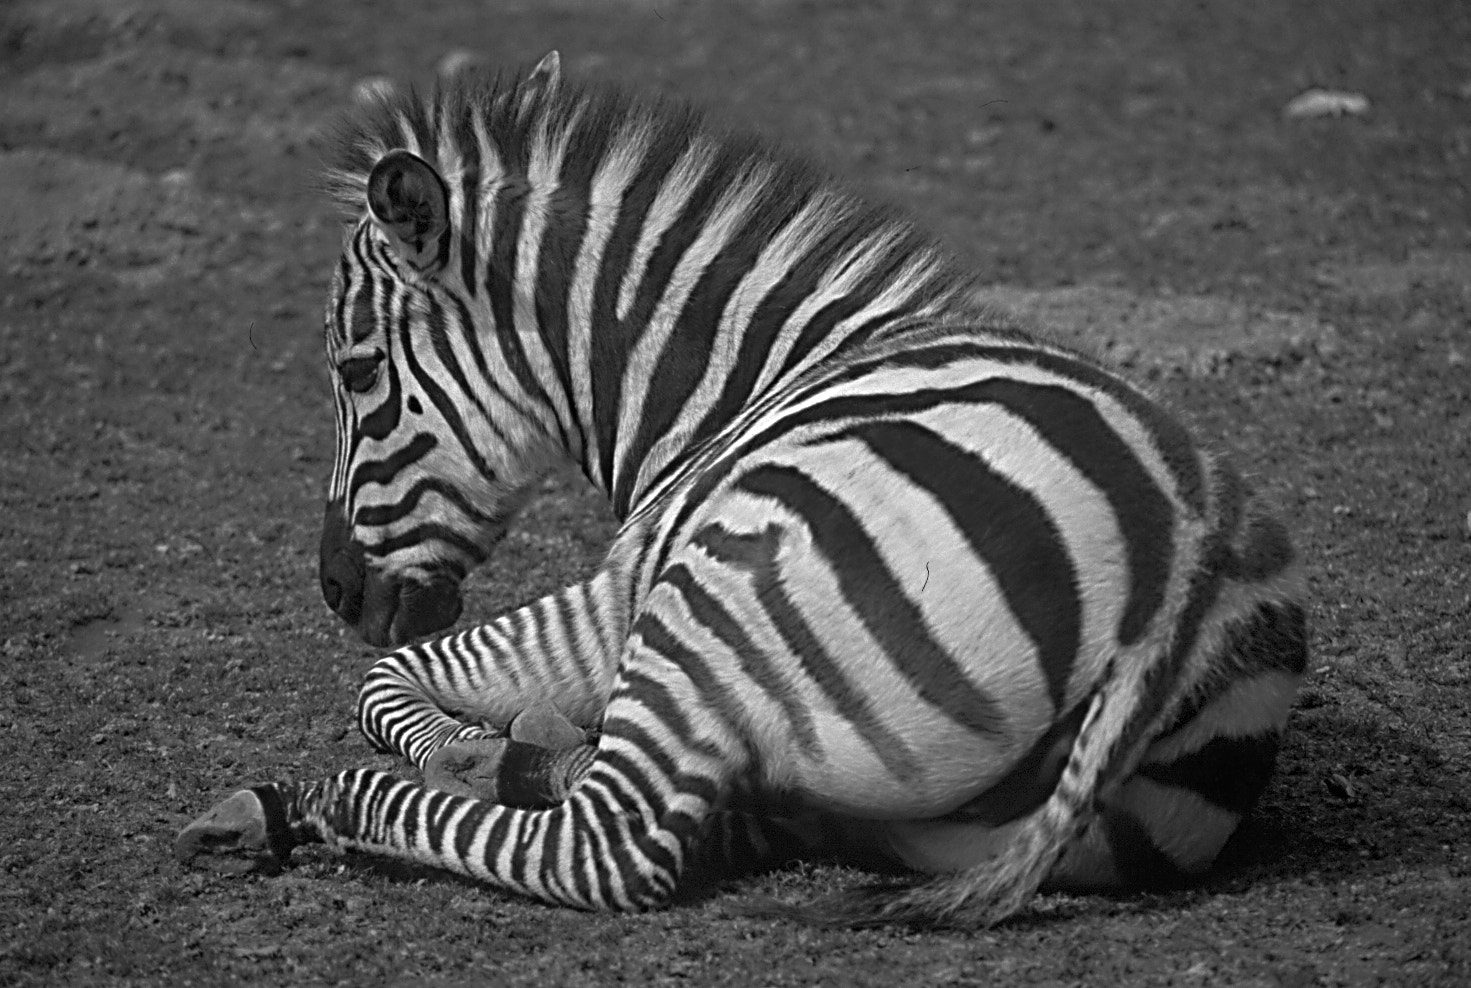 Photograph zebra's wild ass by cyberjani on 500px